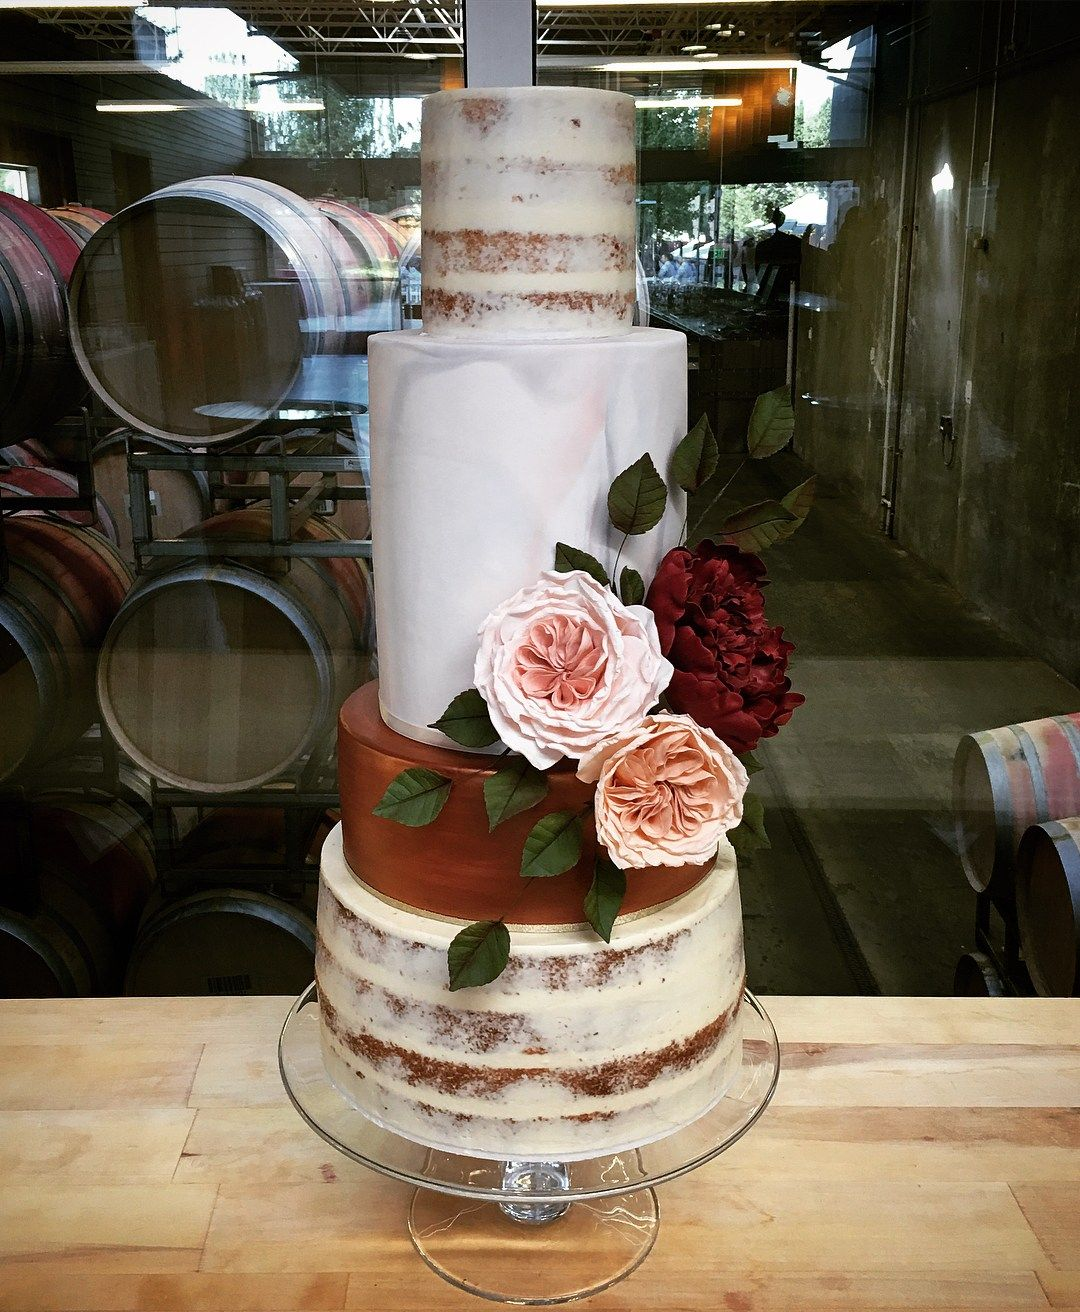 coppery, marbled, nearly-naked combo beauty with her sash of luscious sugar flowers wedding cakes #weddingcake #cake